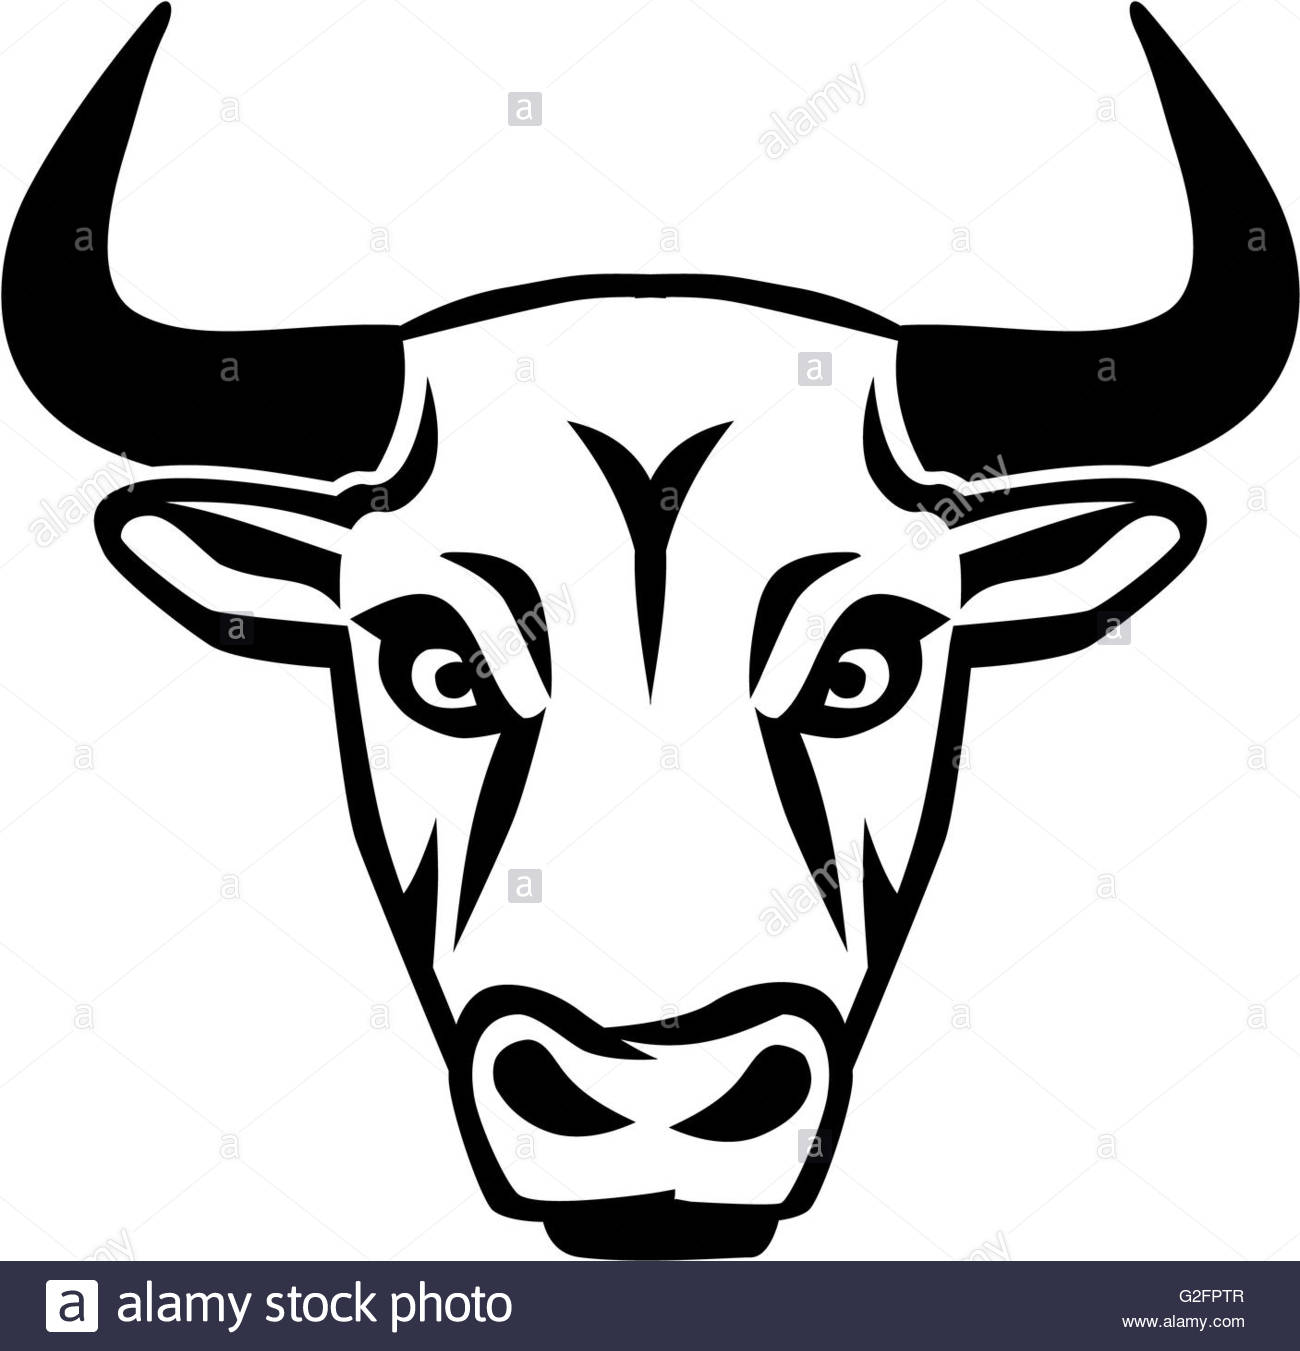 1300x1351 Silhouette Bull Head Stock Photo 104838743